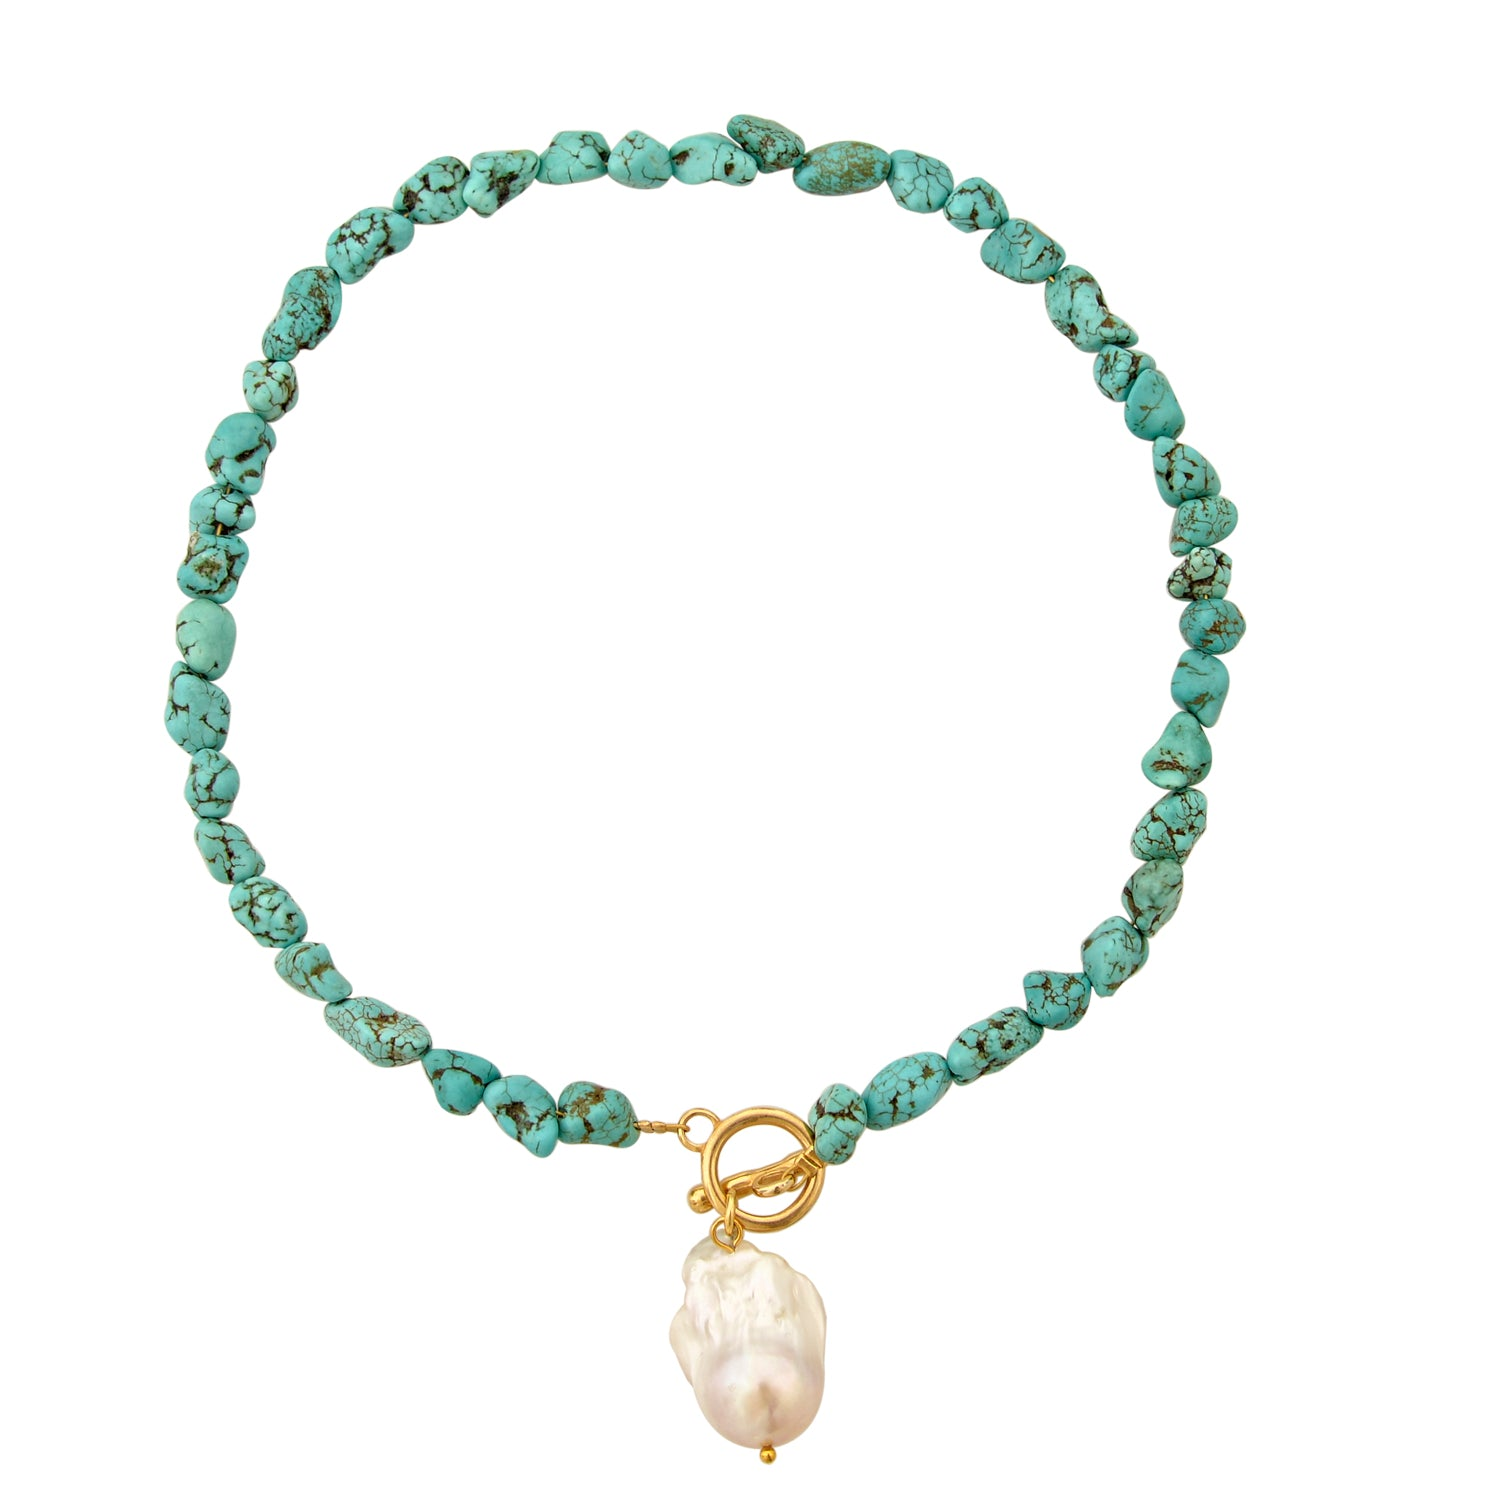 Short tumbled turquoise necklace with baroque drop pearl and gold bar clasp by Mayol